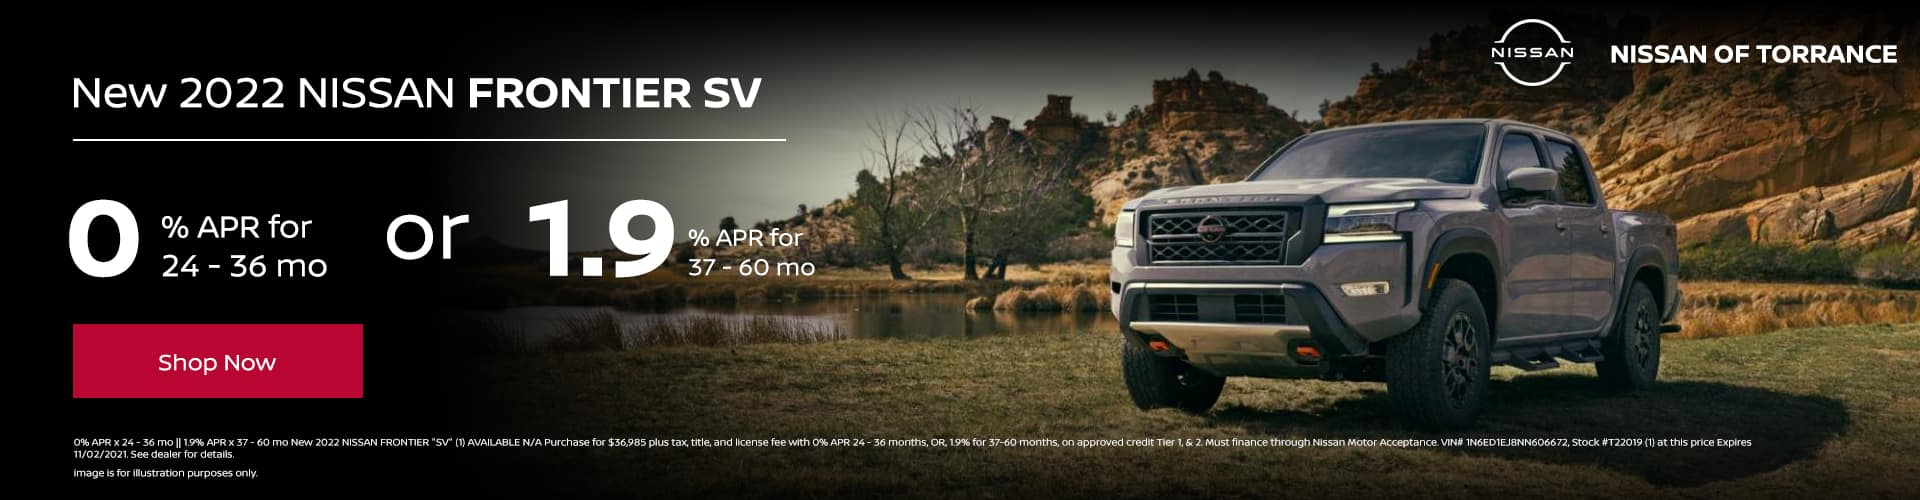 New 2022 NISSAN FRONTIER SV 0% APR for 24 - 36 months || 1.9% APR for 37 - 60 months